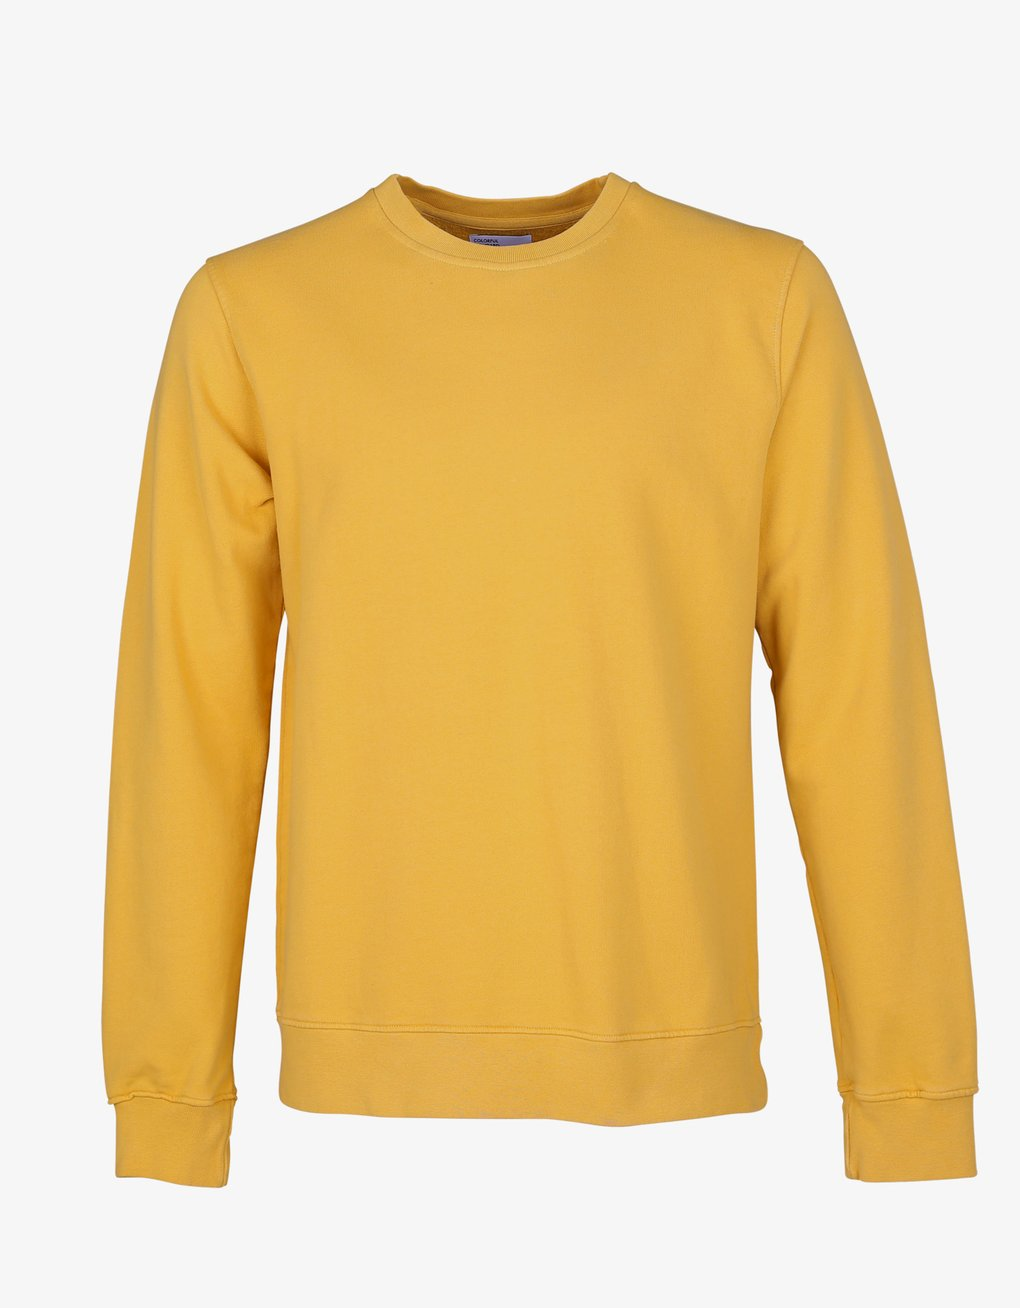 COLORFUL STANDARD | Organic Cotton Sweatshirt | Burned Yellow - LONDØNWORKS